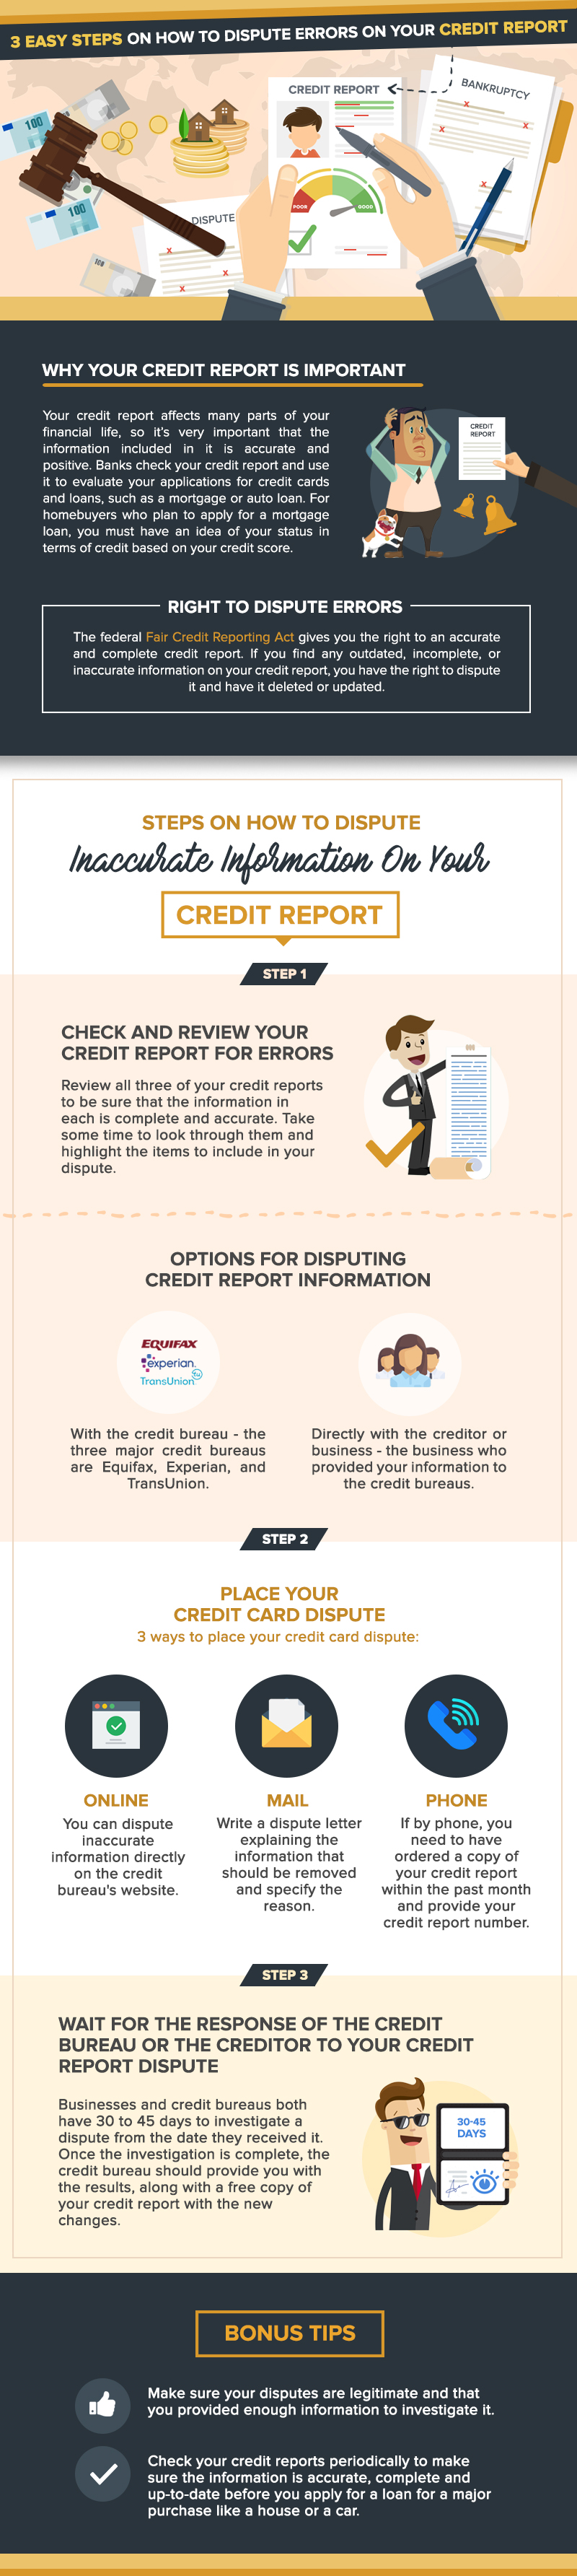 3 Easy Steps On How To Dispute Errors On Your Credit Report-updated.jpg